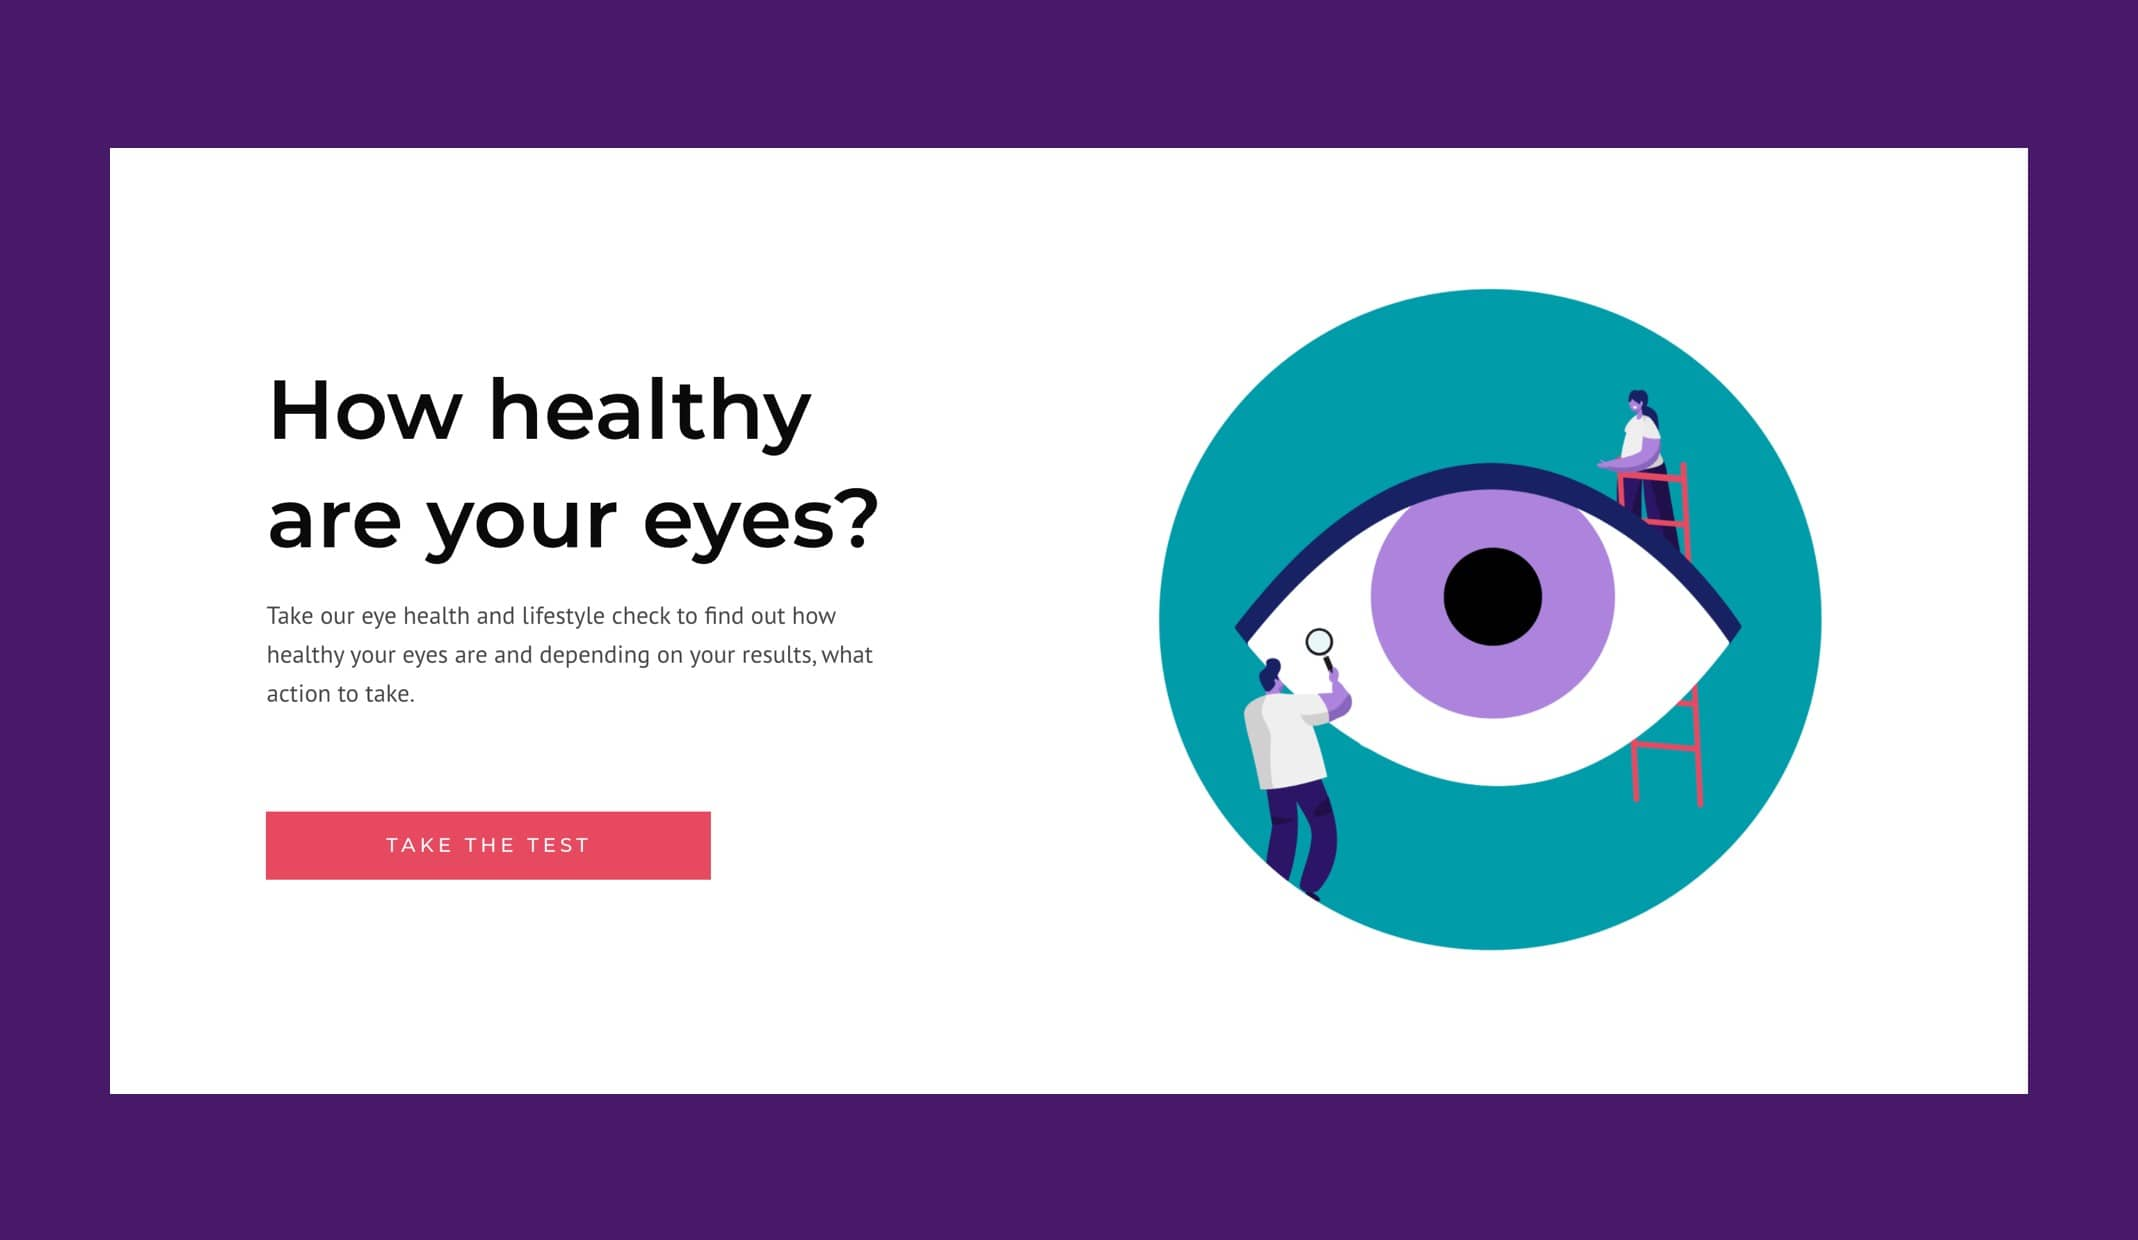 With the new website, customers are now able to take an online eye health and lifestyle test to help encourage them to book an appointment and educate more about the importance of looking after your eyes. The decision tree style test, uses situational questions to inform customers about the importance of regularly visiting an optician whilst strong call to actions encourage users to book an appointment.